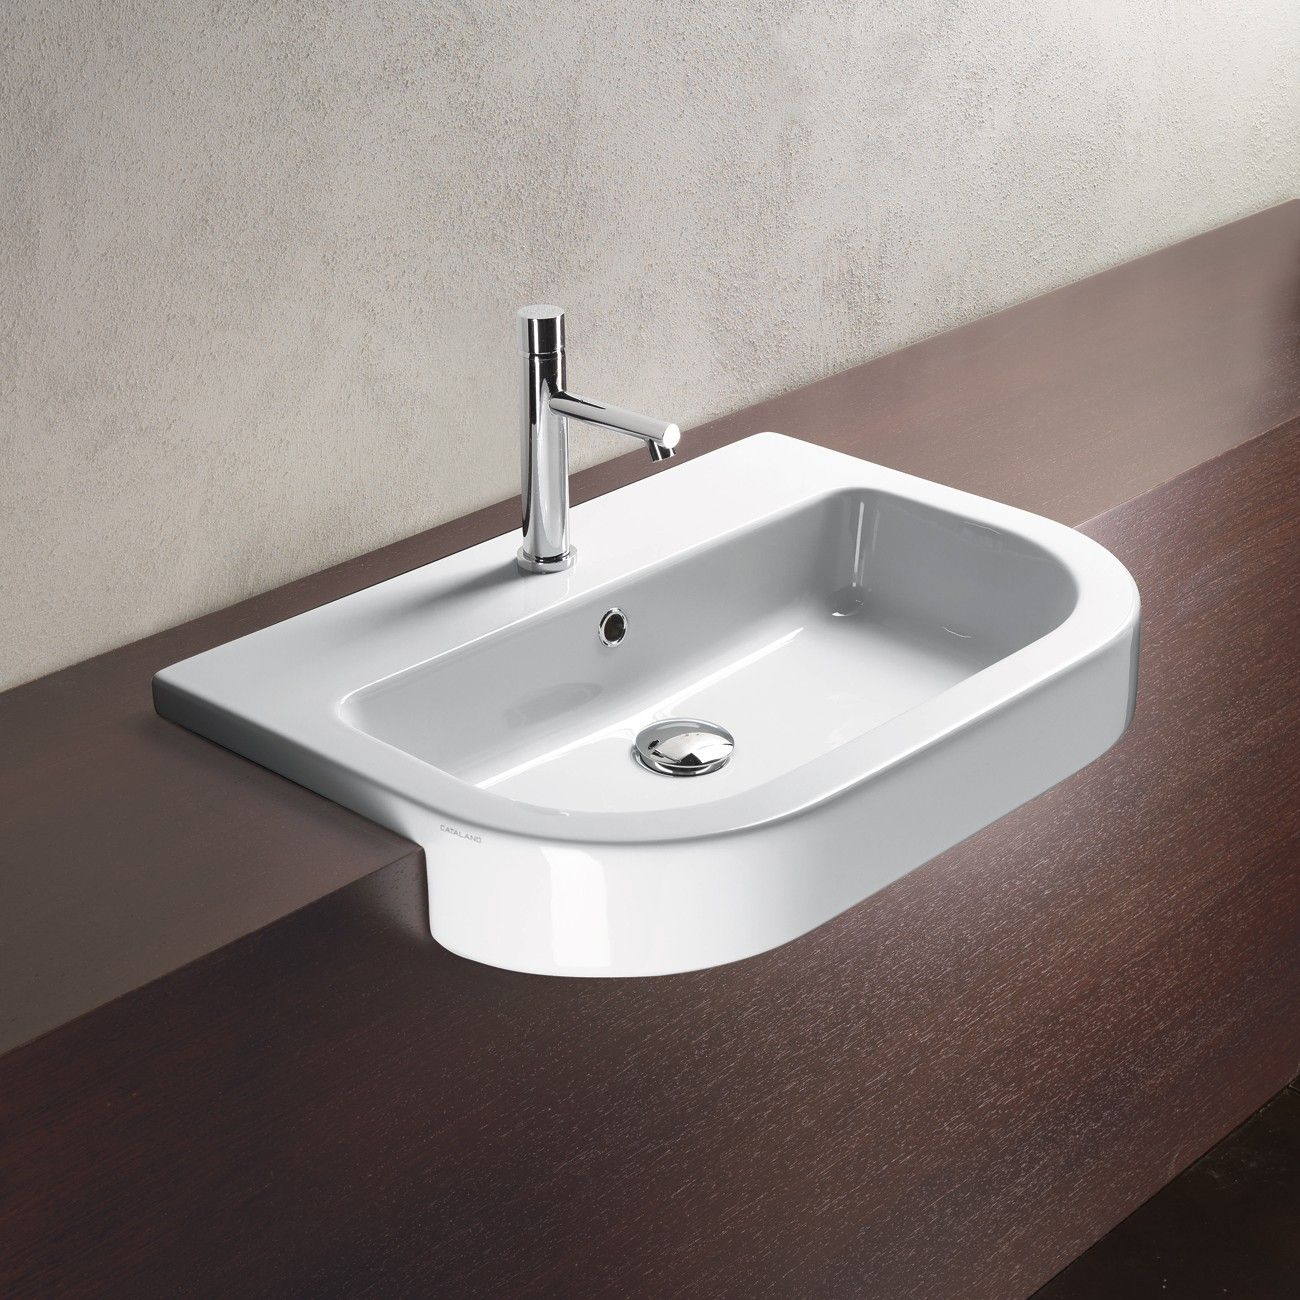 Catalano Zero Tondo Semi Recessed Washbasin   Rogerseller